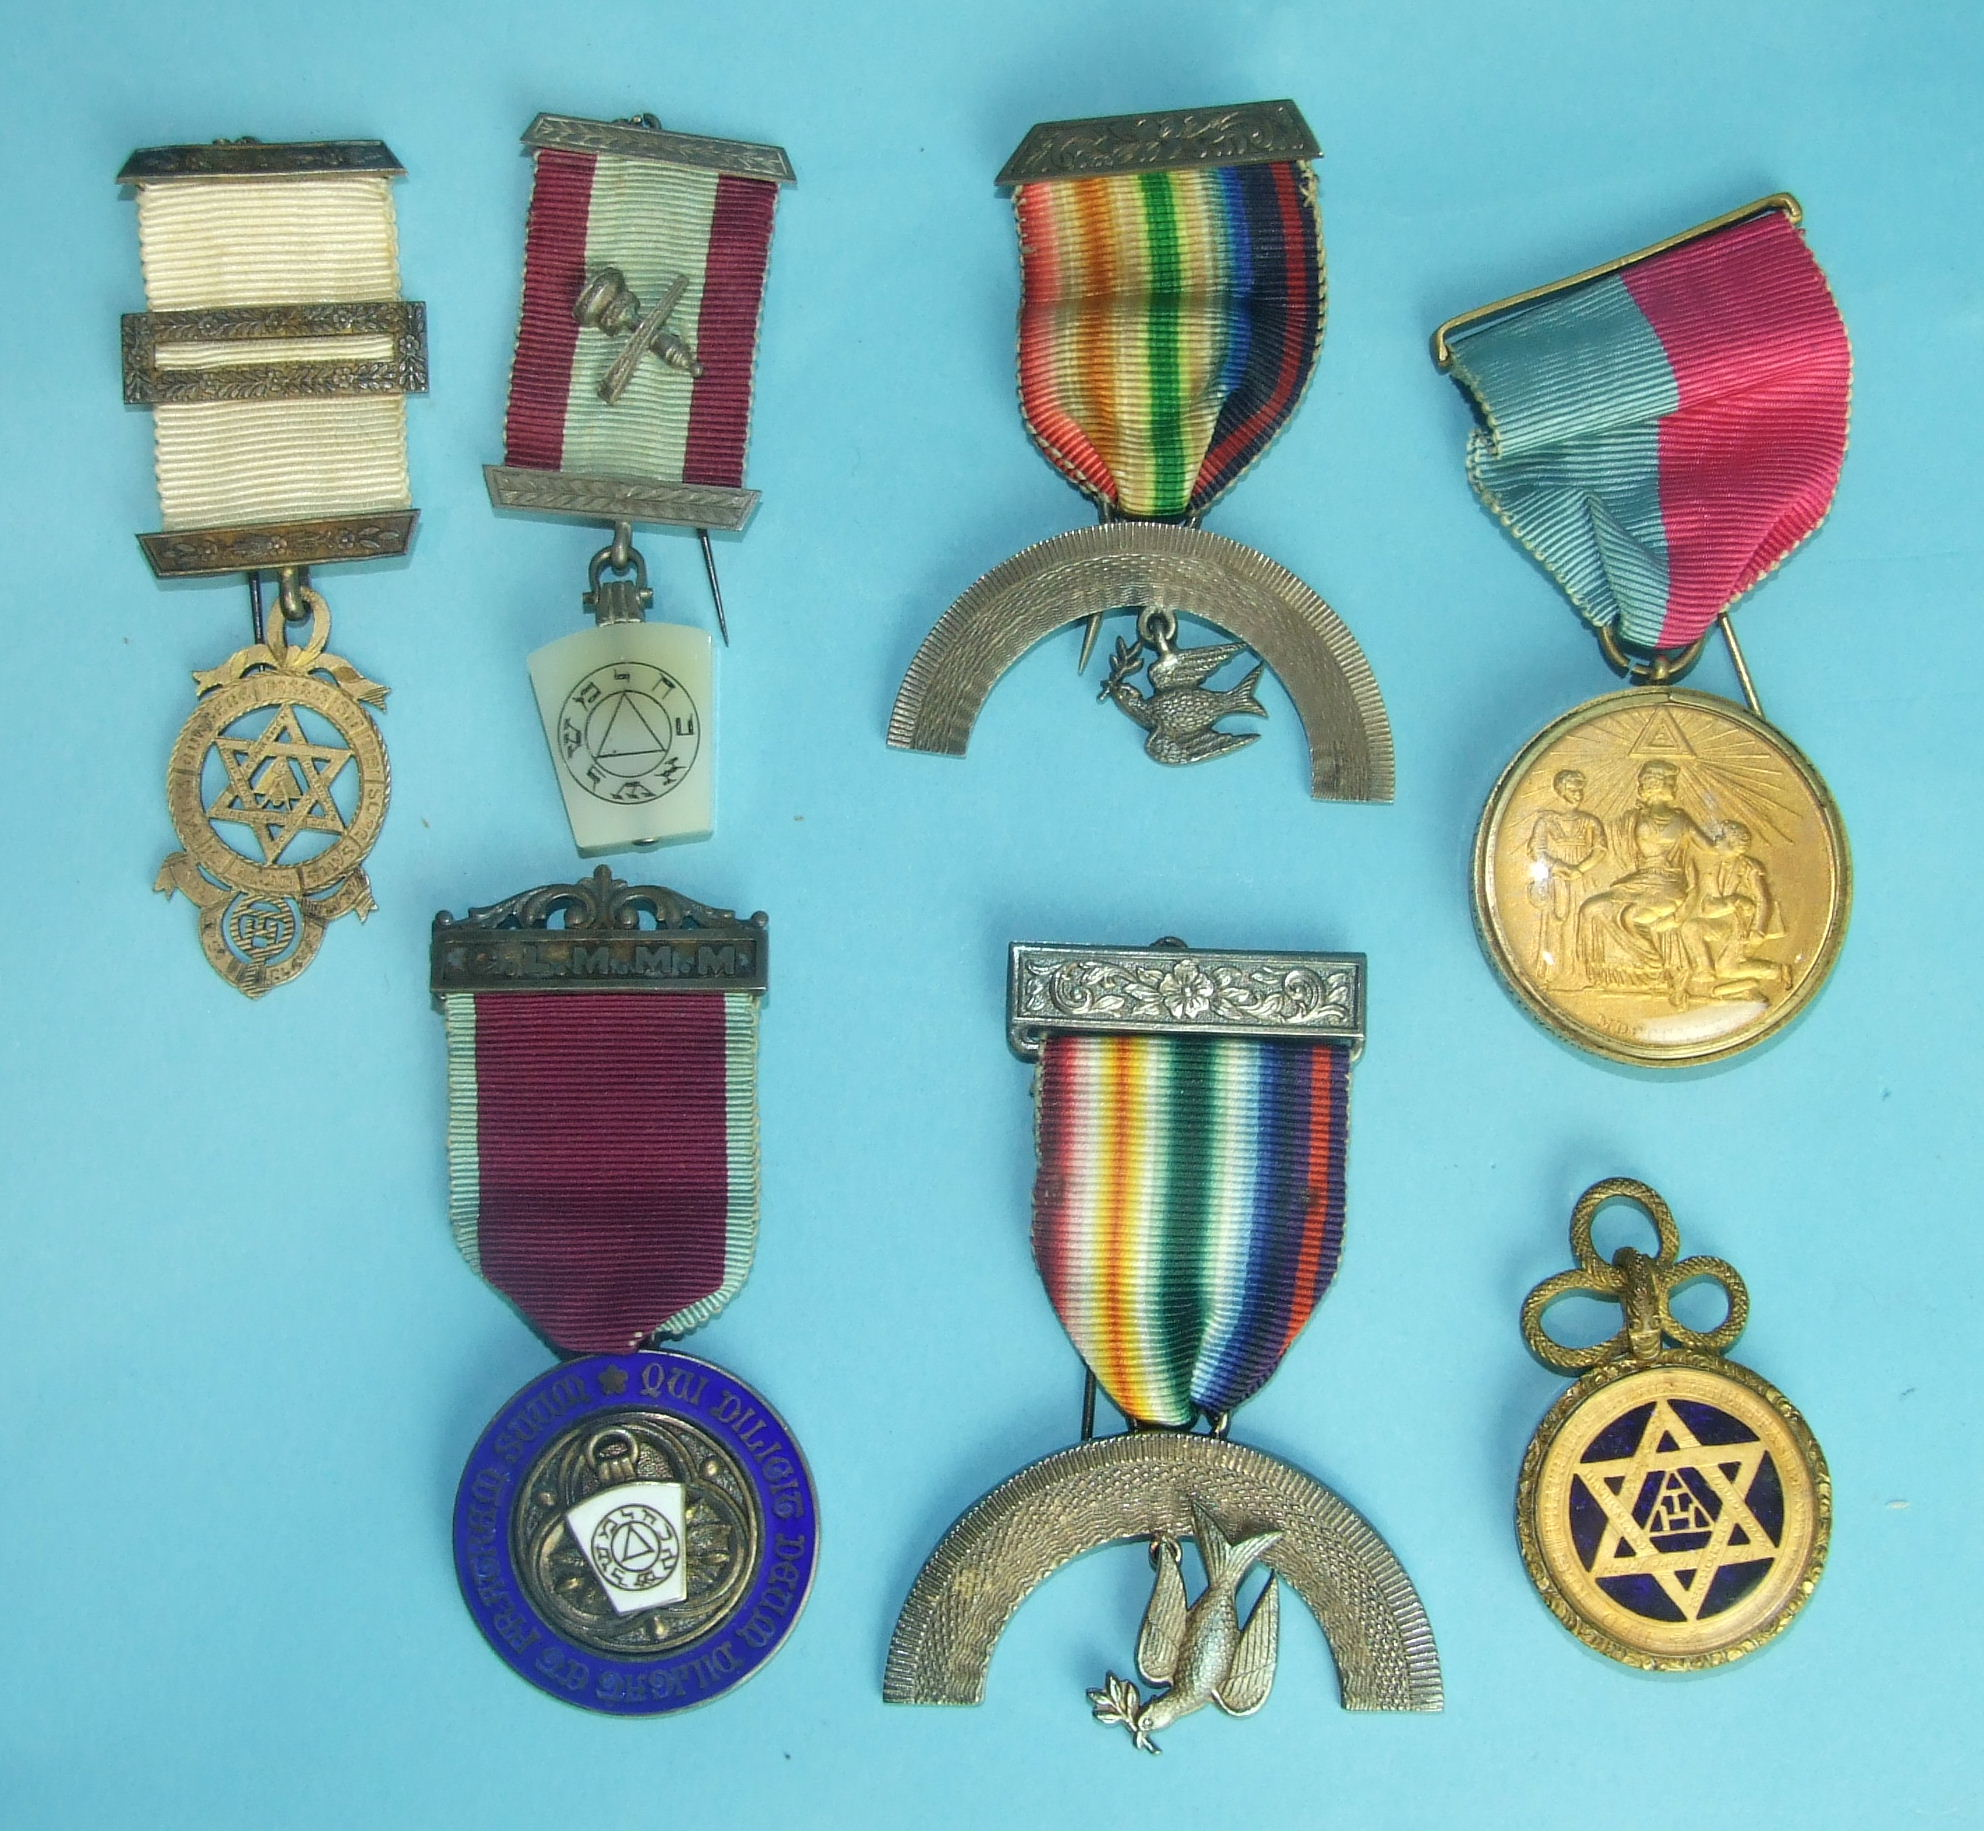 Lot 192 - Two silver Royal Ark Mariners breast jewels, a silver Mark jewel and others.